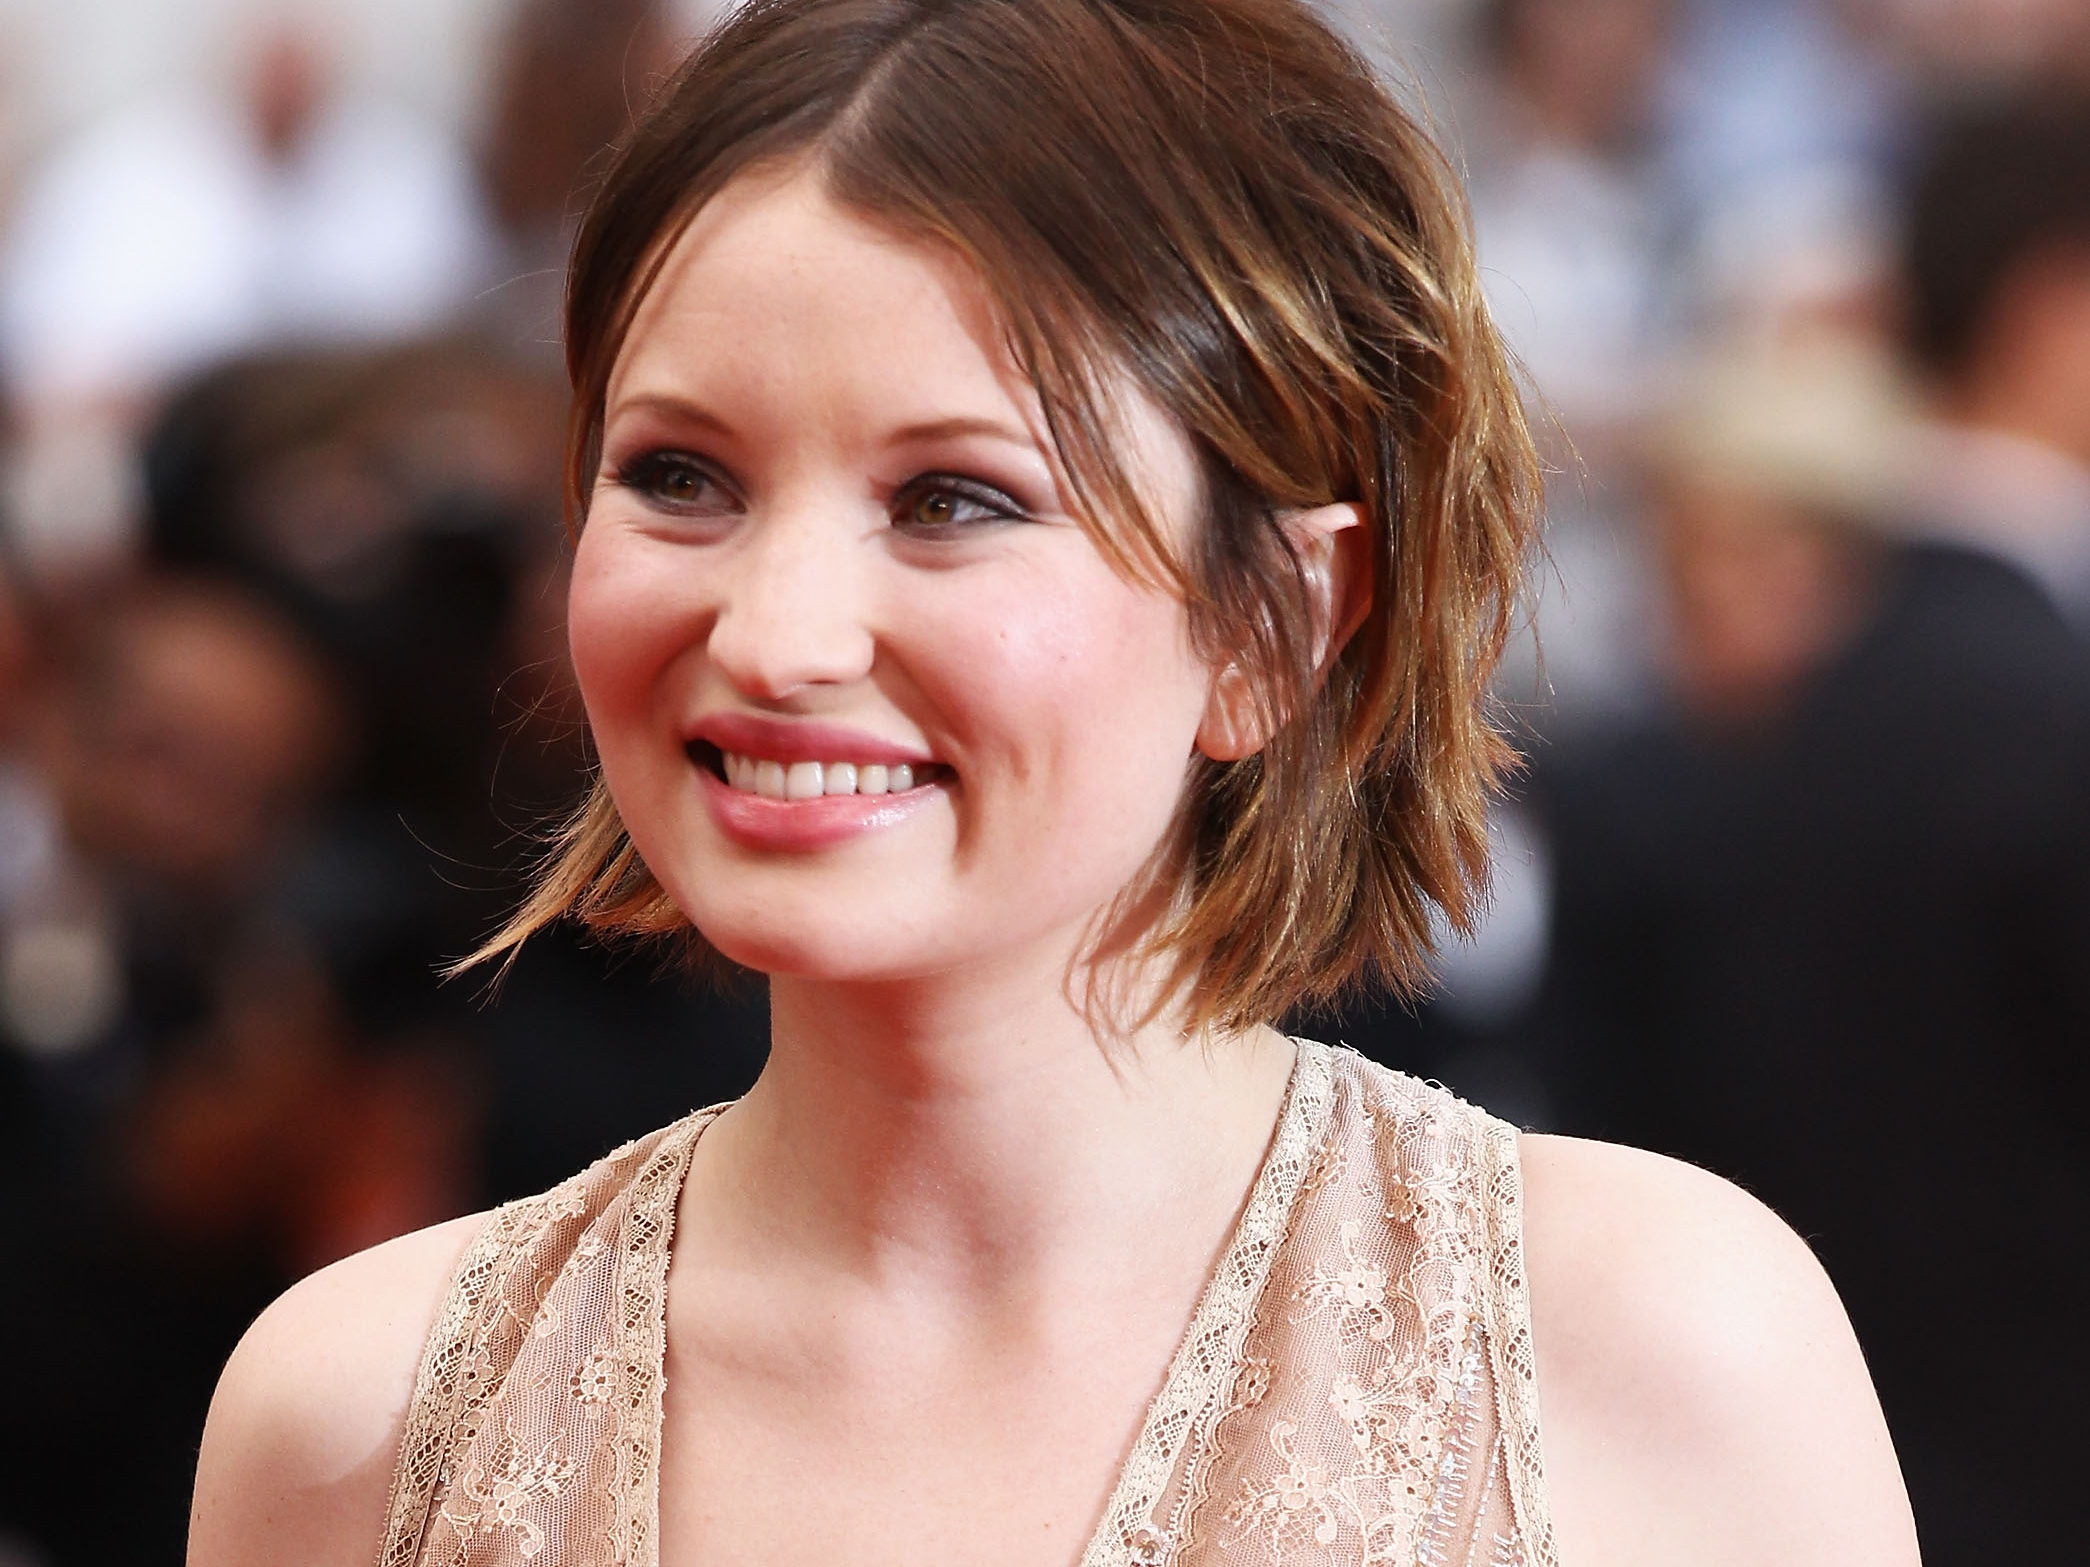 High Resolution Wallpaper | Emily Browning 2090x1567 px